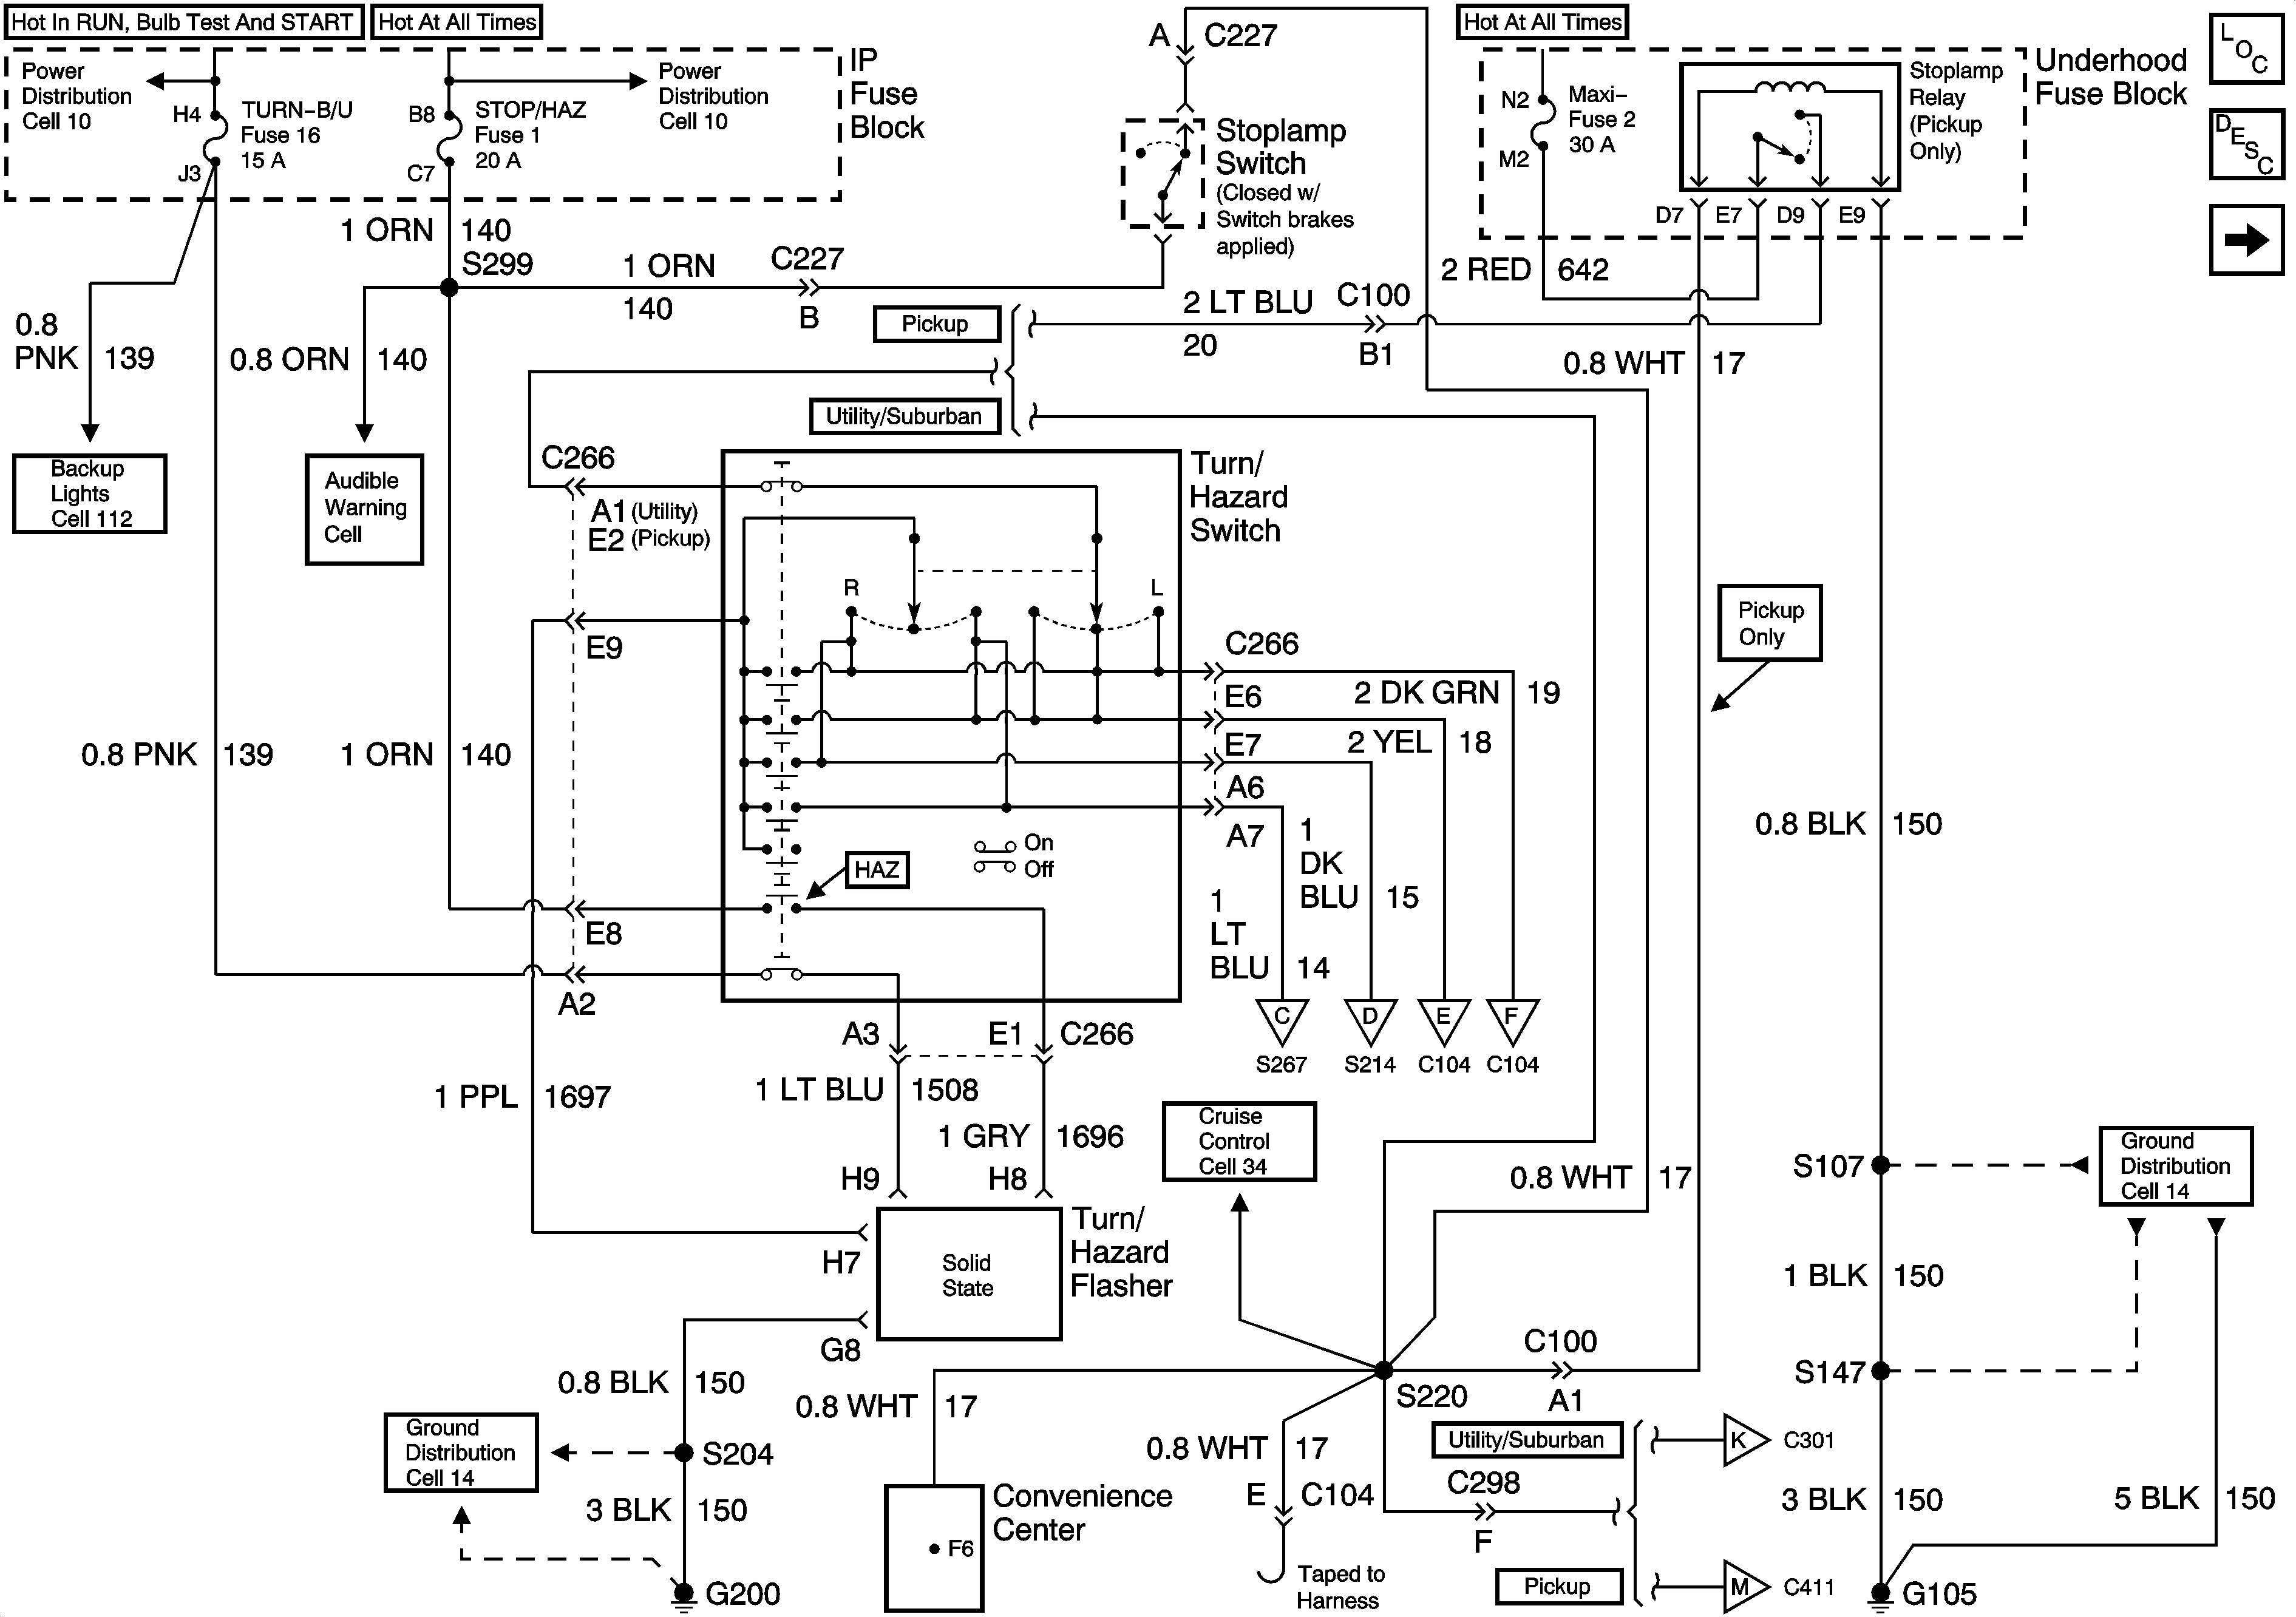 chevy trailblazer engine diagram moreover 2003 trailblazer front chevy trailblazer engine diagram moreover 2003 trailblazer front